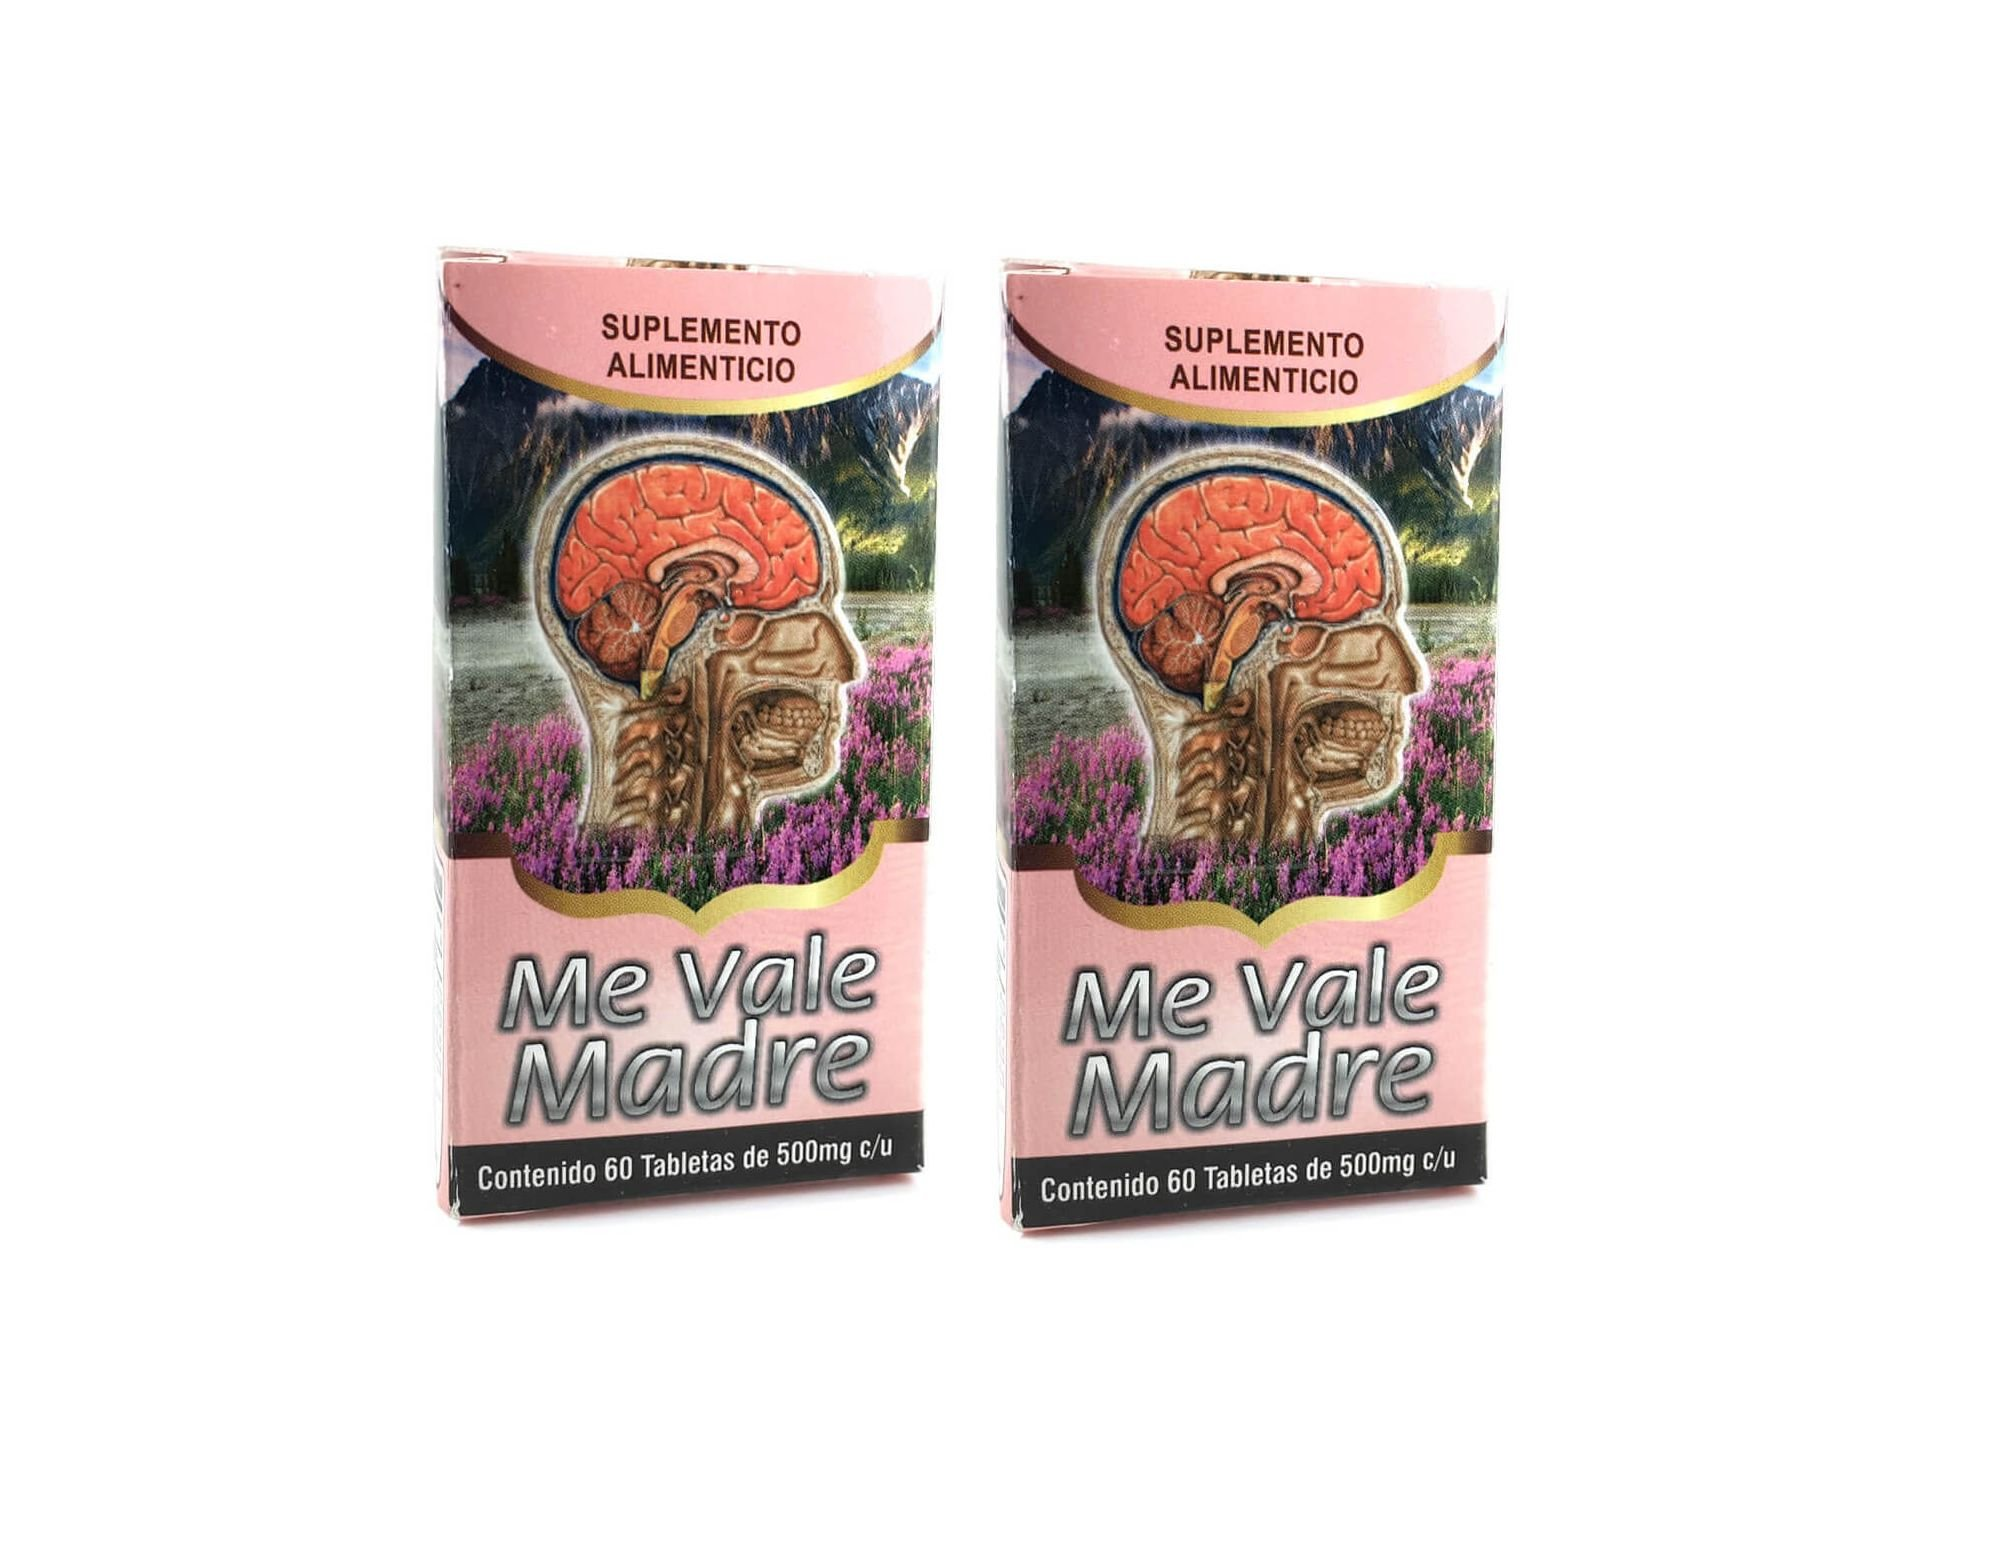 Amazon.com: 2 Cajas Me Vale Madre 60 Caps. Each Box Headache Migraine & Stress/ Dolor De Cabeza,estres: Health & Personal Care